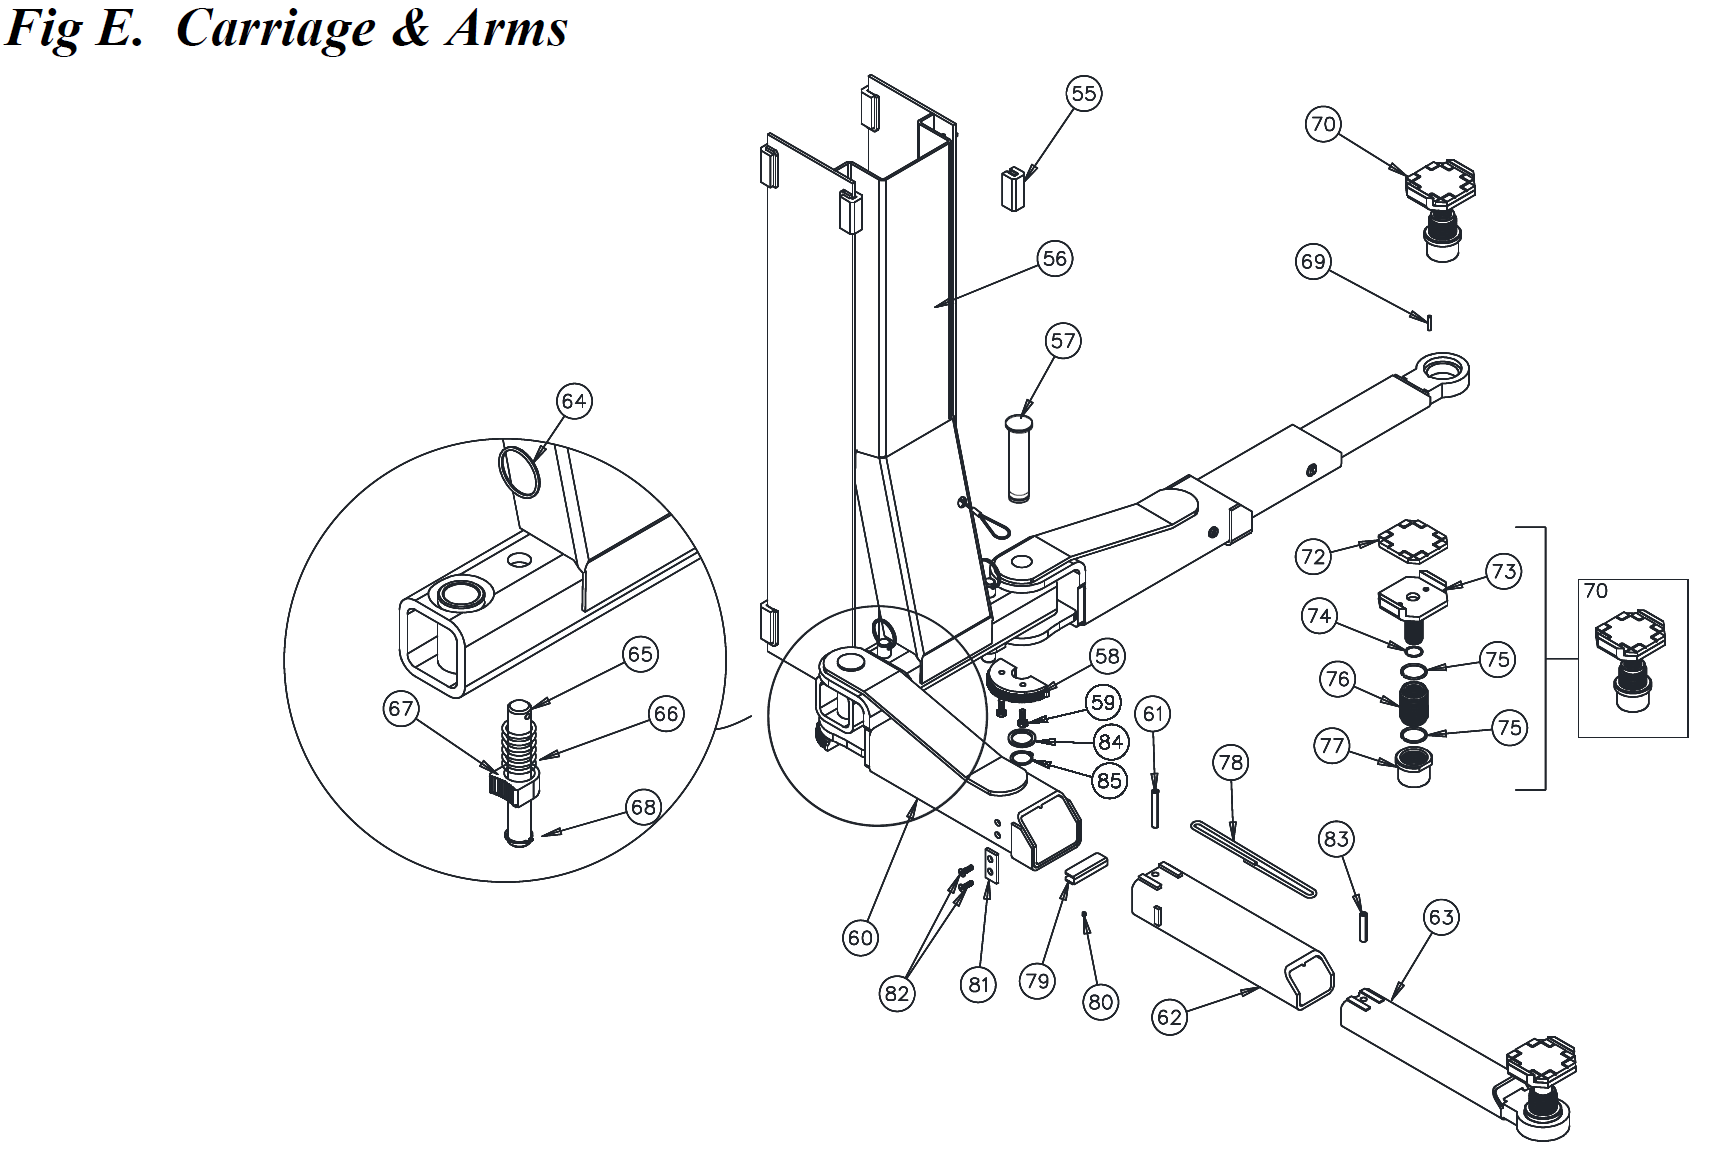 clfp9-carriage-arms-diagram.png